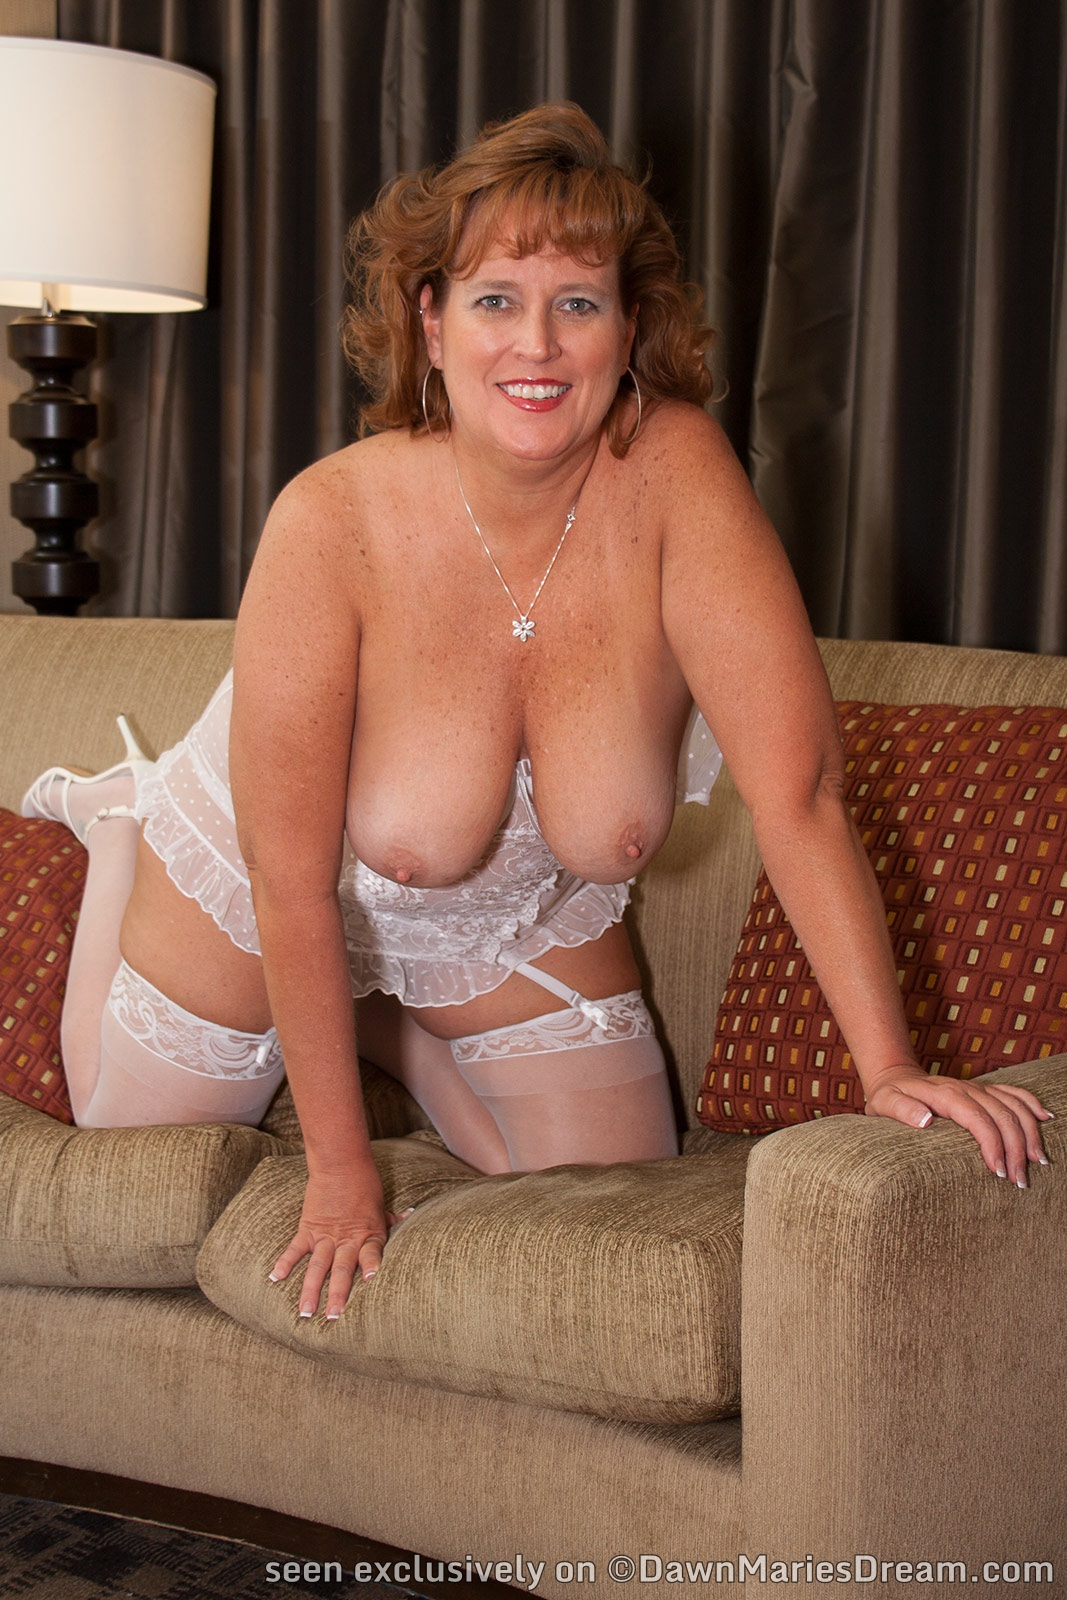 Was and dawn marie pantyhose seems